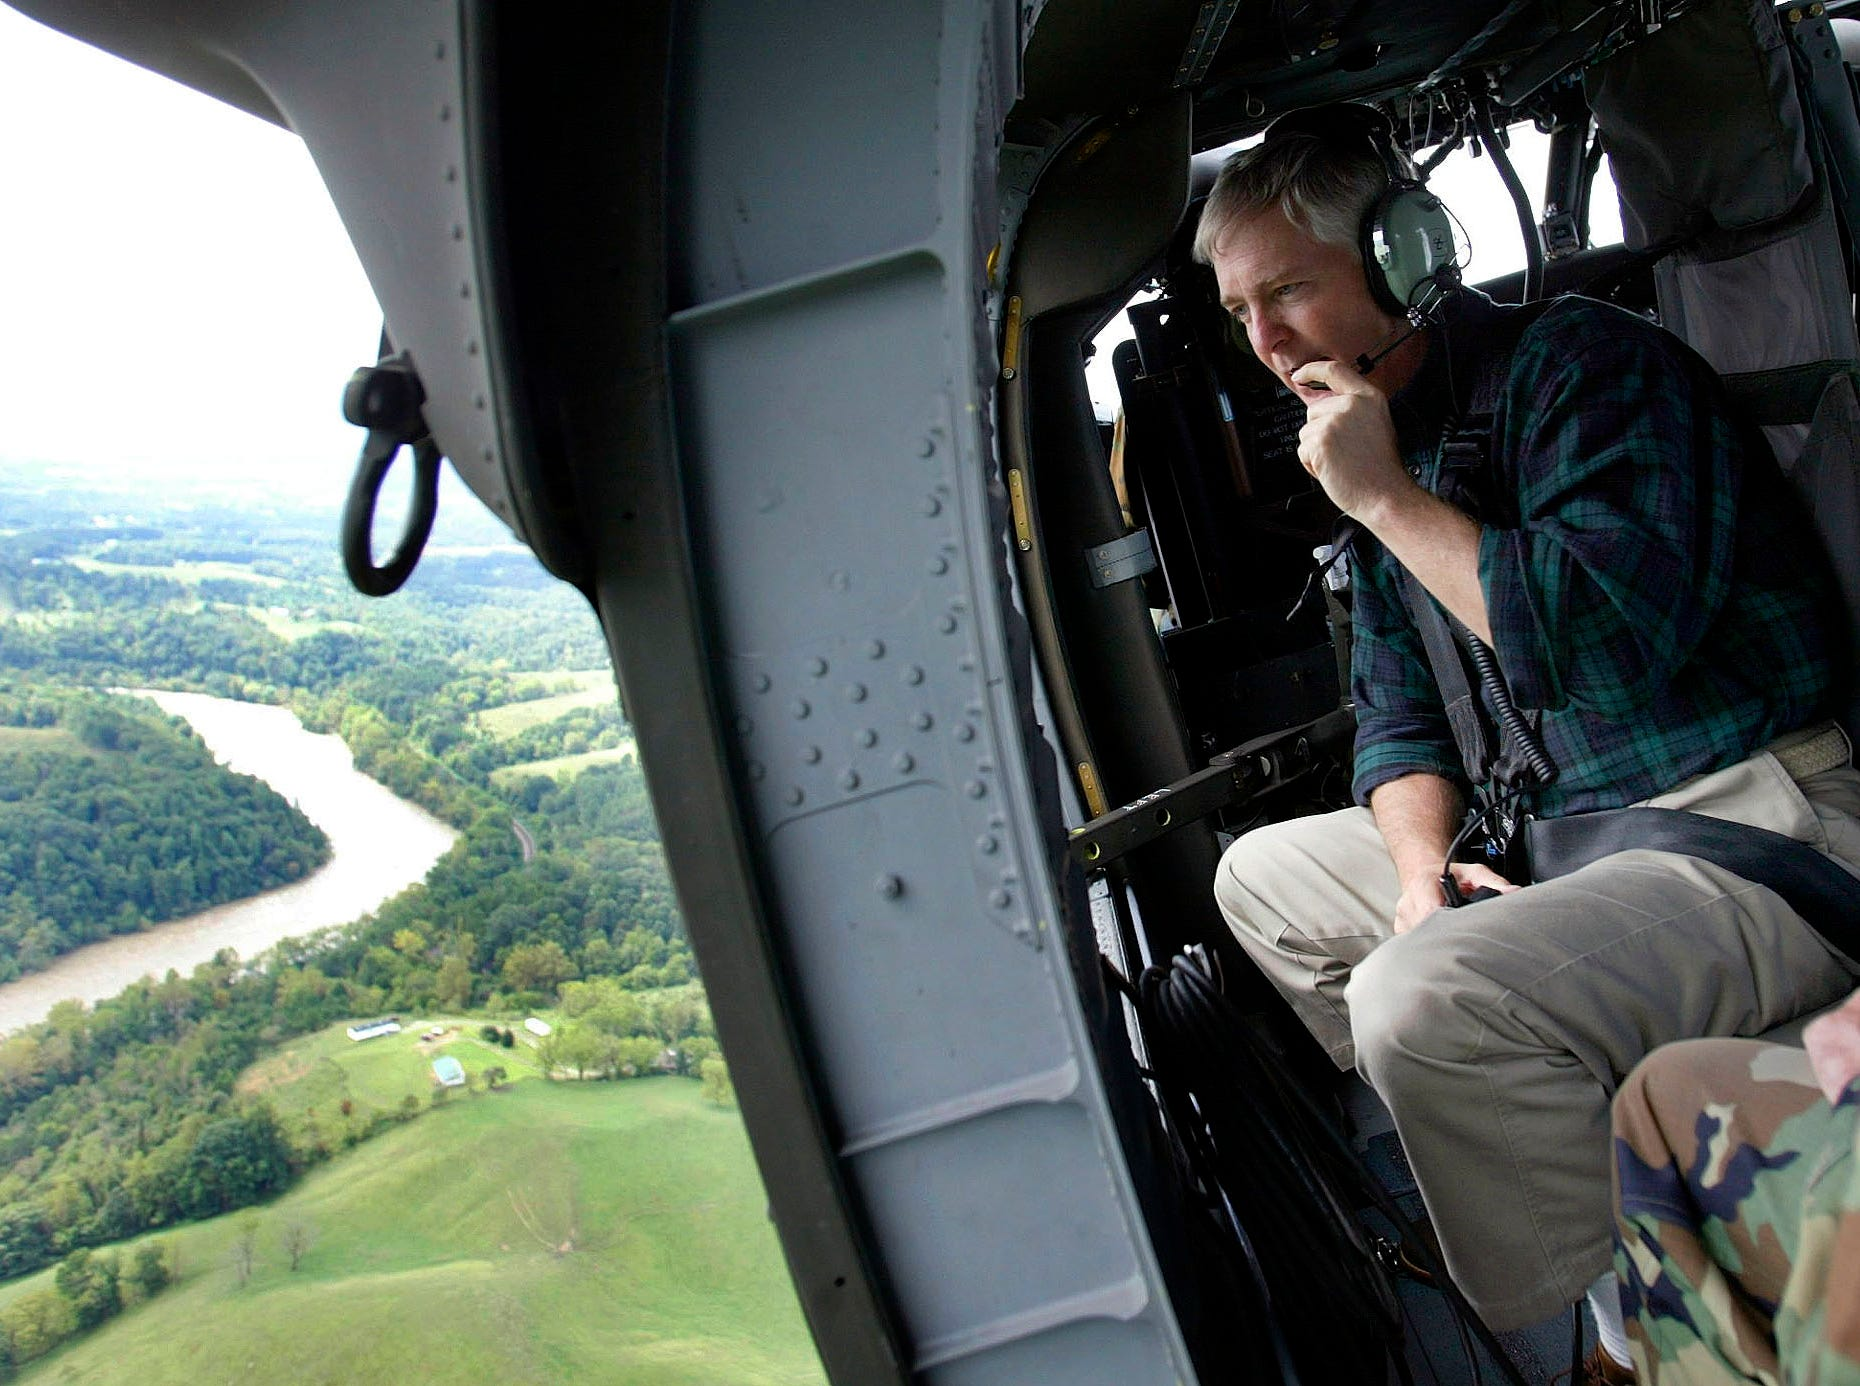 North Carolina Gov. Mike Easley looks out of a helicopter door at flood damage near Asheville on Sept. 9, 2004, after the remnants of Hurricane Frances brought heavy rains and flooding to the area.